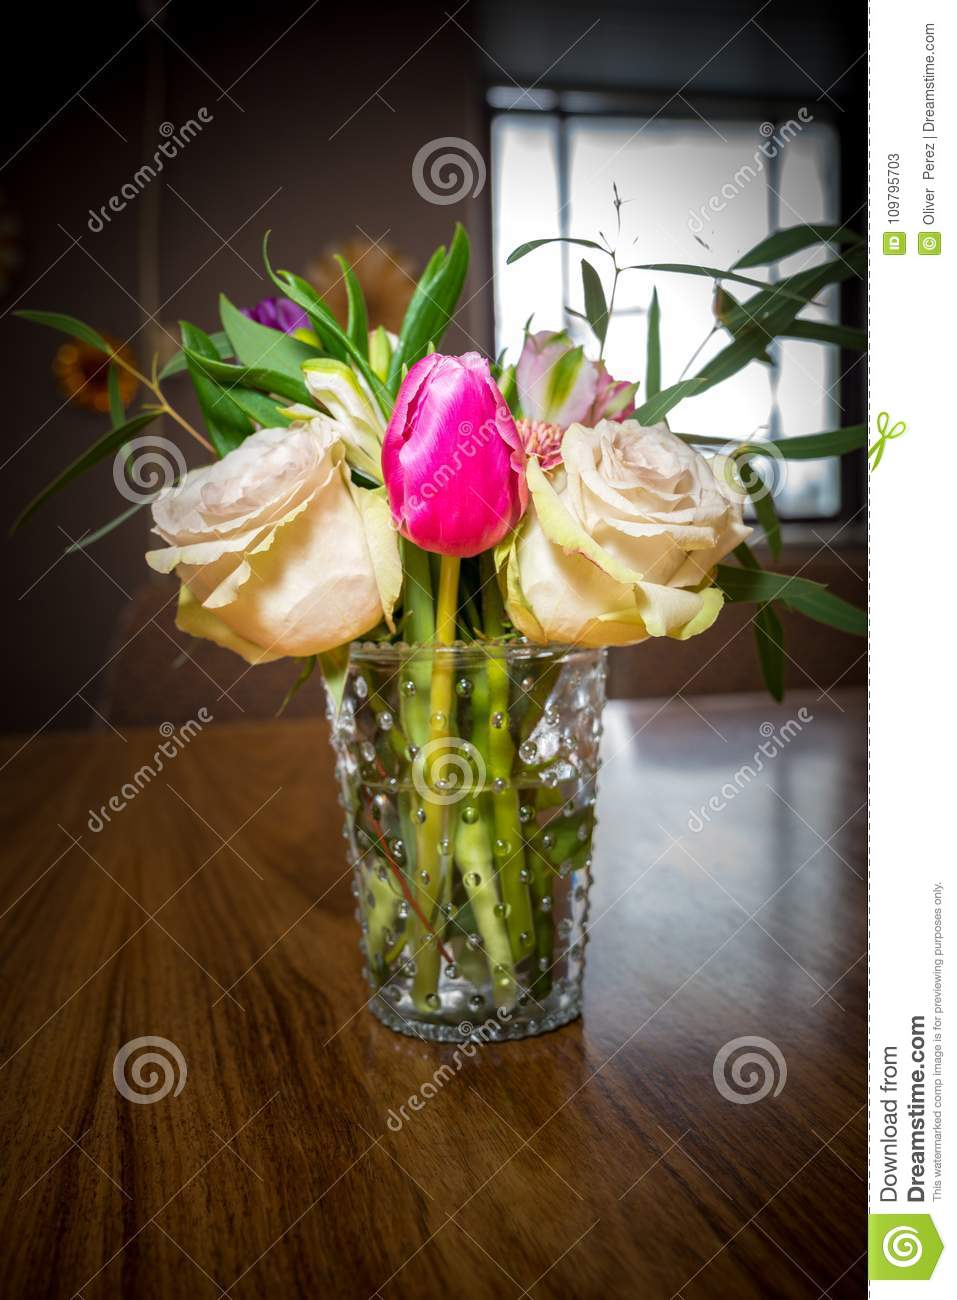 Beautiful Flower Arrangement In Glass Vase Stock Image Image Of Elegance Beautiful 109795703